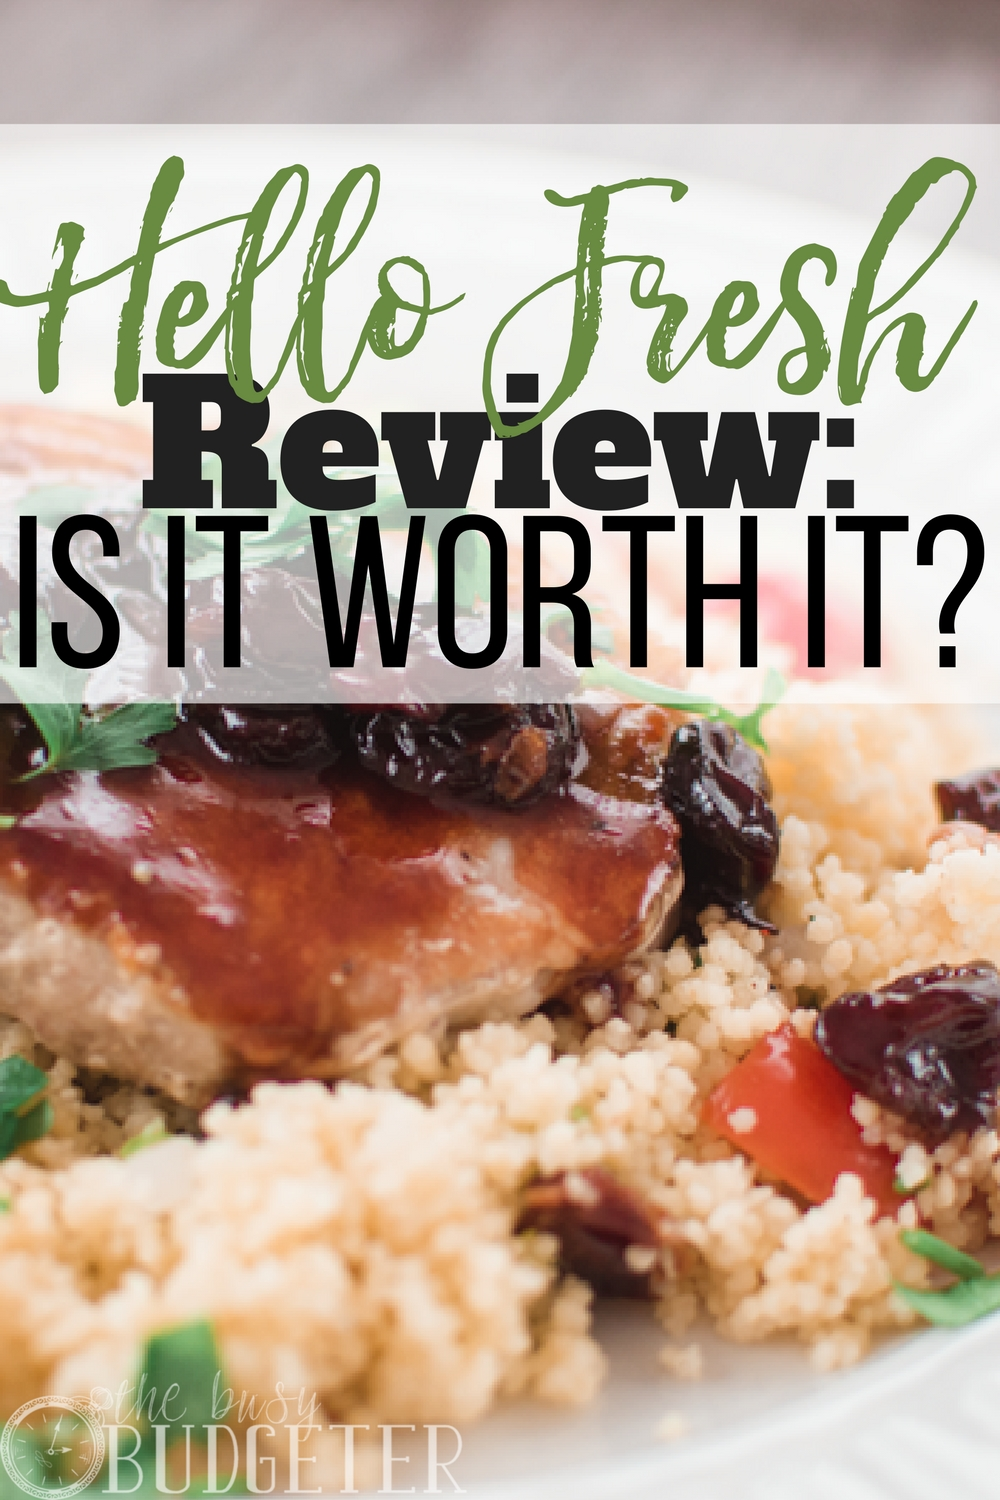 Meal Kit Delivery Service Hellofresh  Review Trusted Reviews